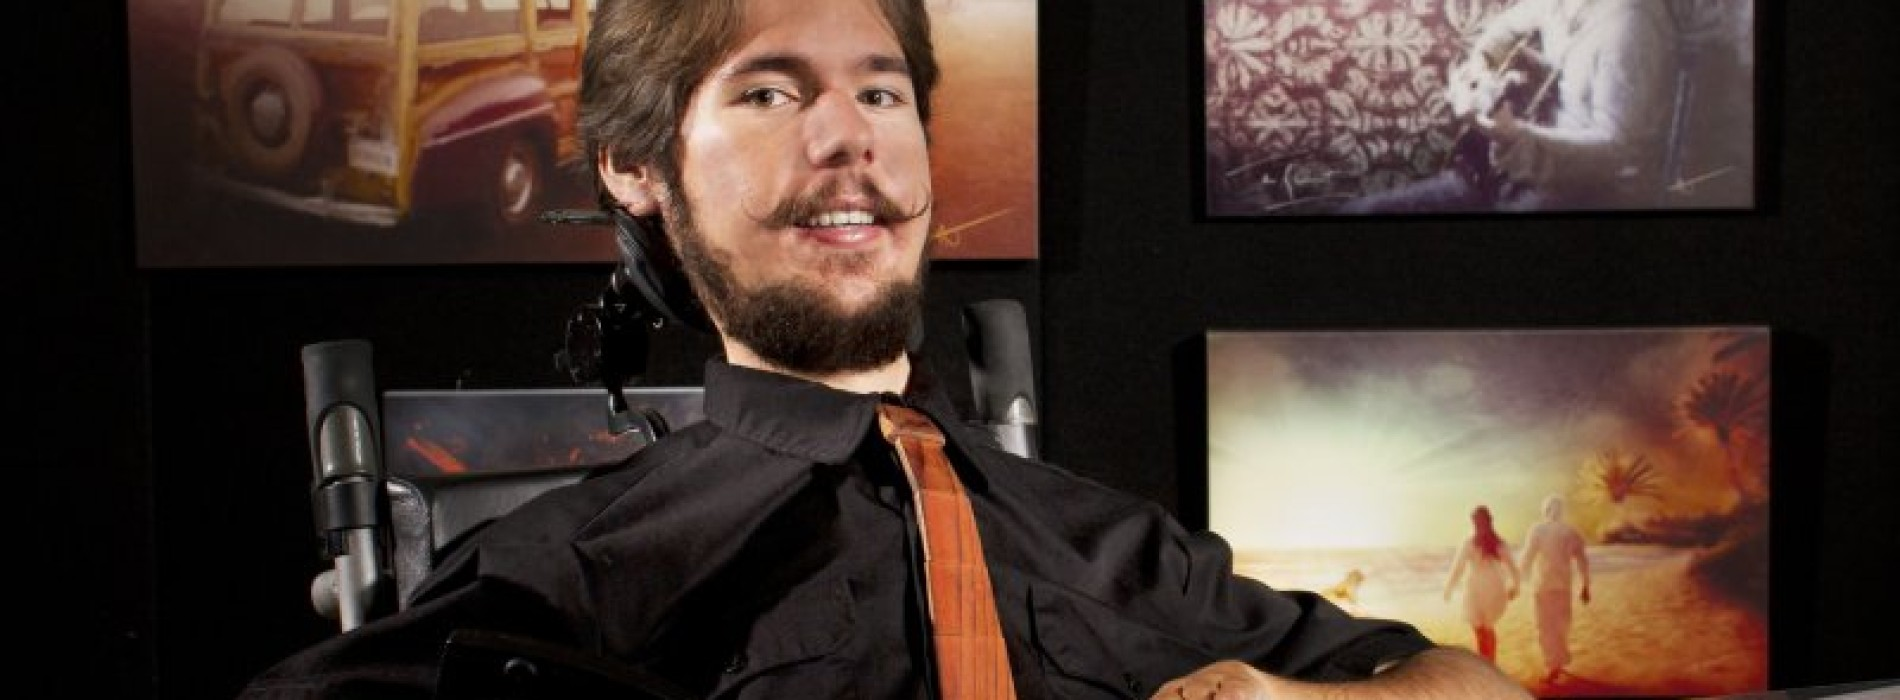 AJ Brockman: Differently abled through digital art